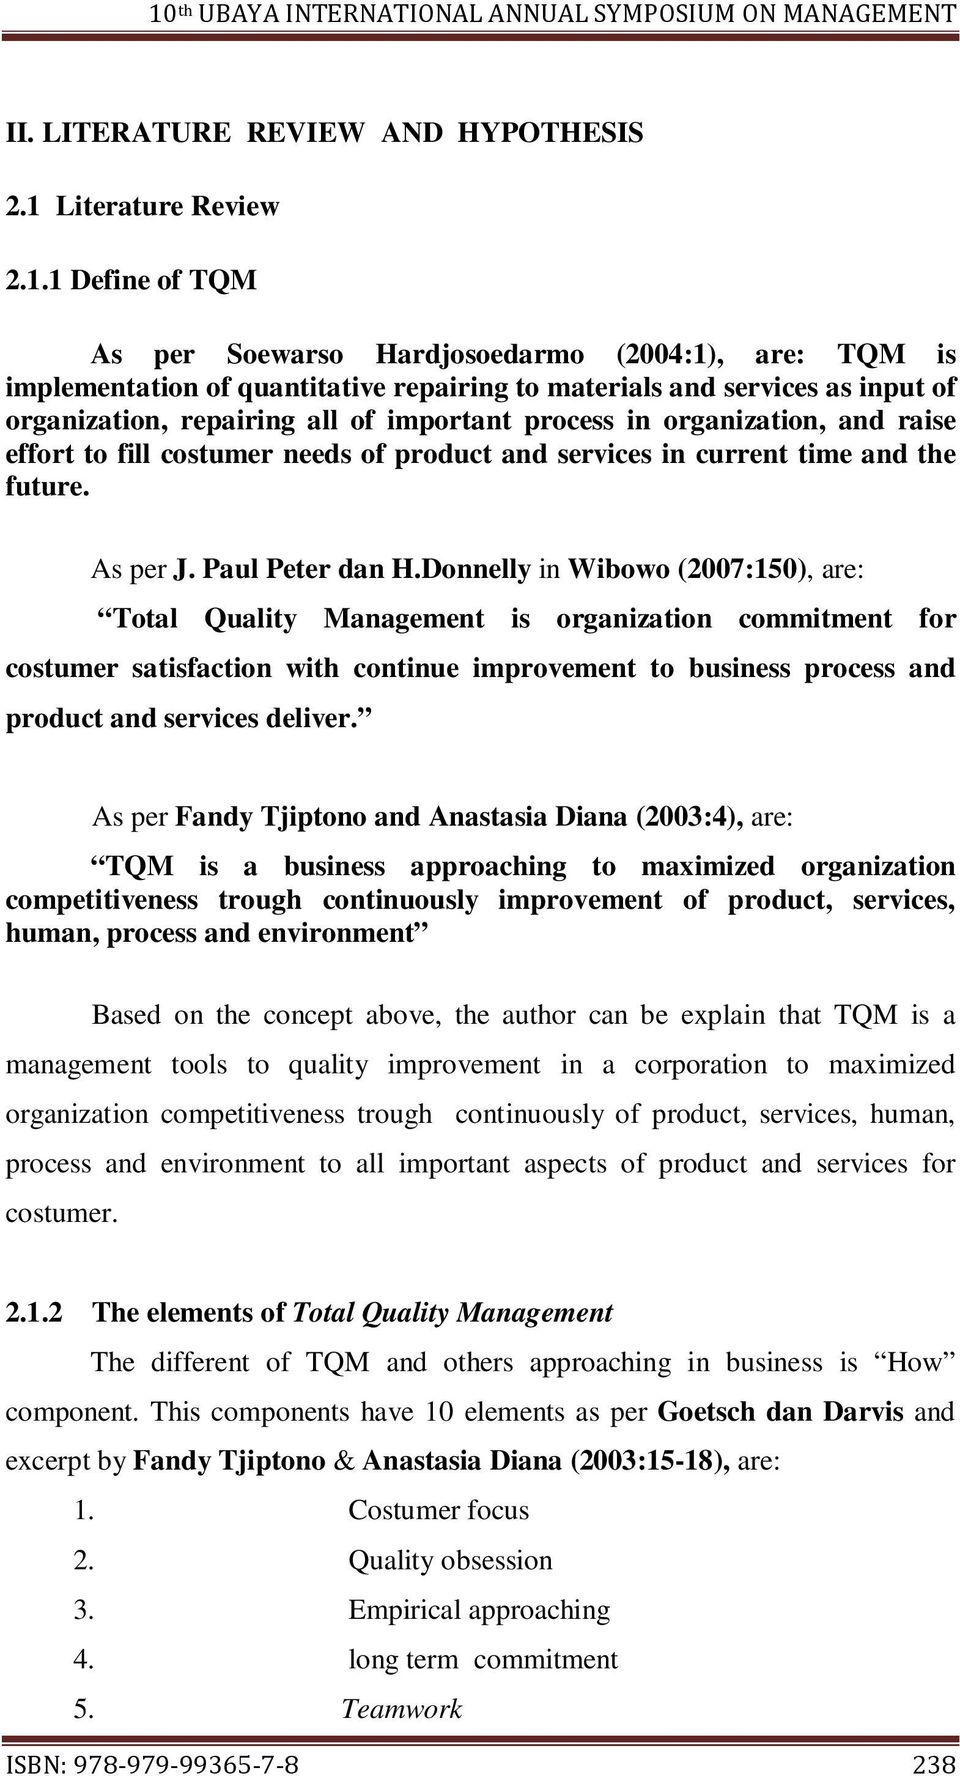 1 Define of TQM As per Soewarso Hardjosoedarmo (2004:1), are: TQM is implementation of quantitative repairing to materials and services as input of organization, repairing all of important process in